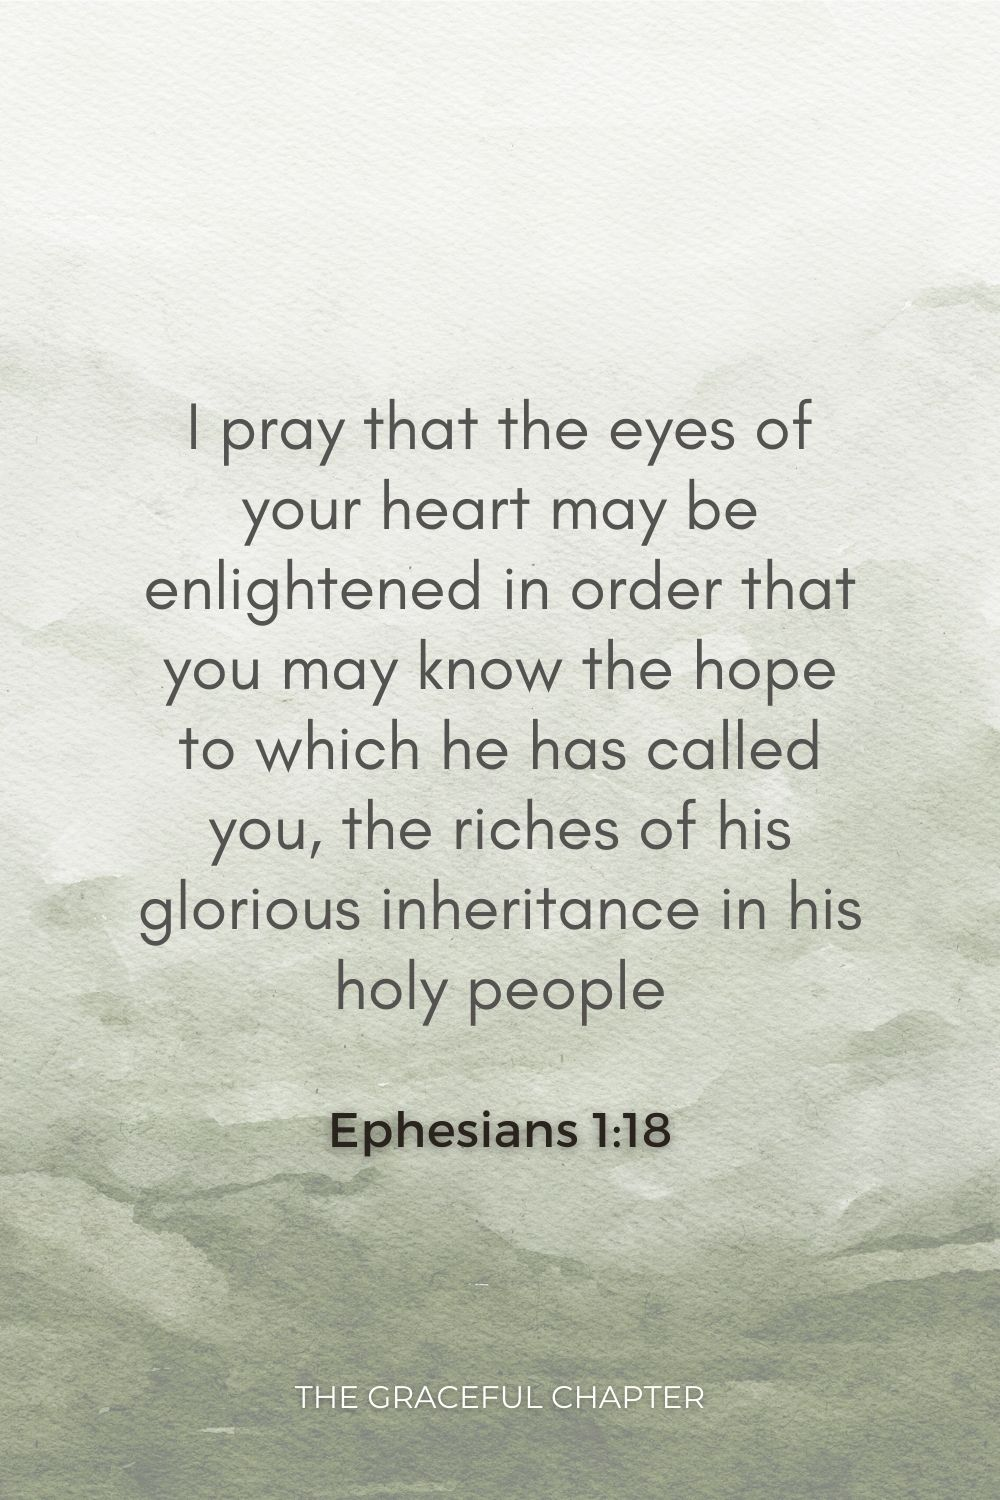 I pray that the eyes of your heart may be enlightened in order that you may know the hope to which he has called you, the riches of his glorious inheritance in his holy people, Ephesians 1:18